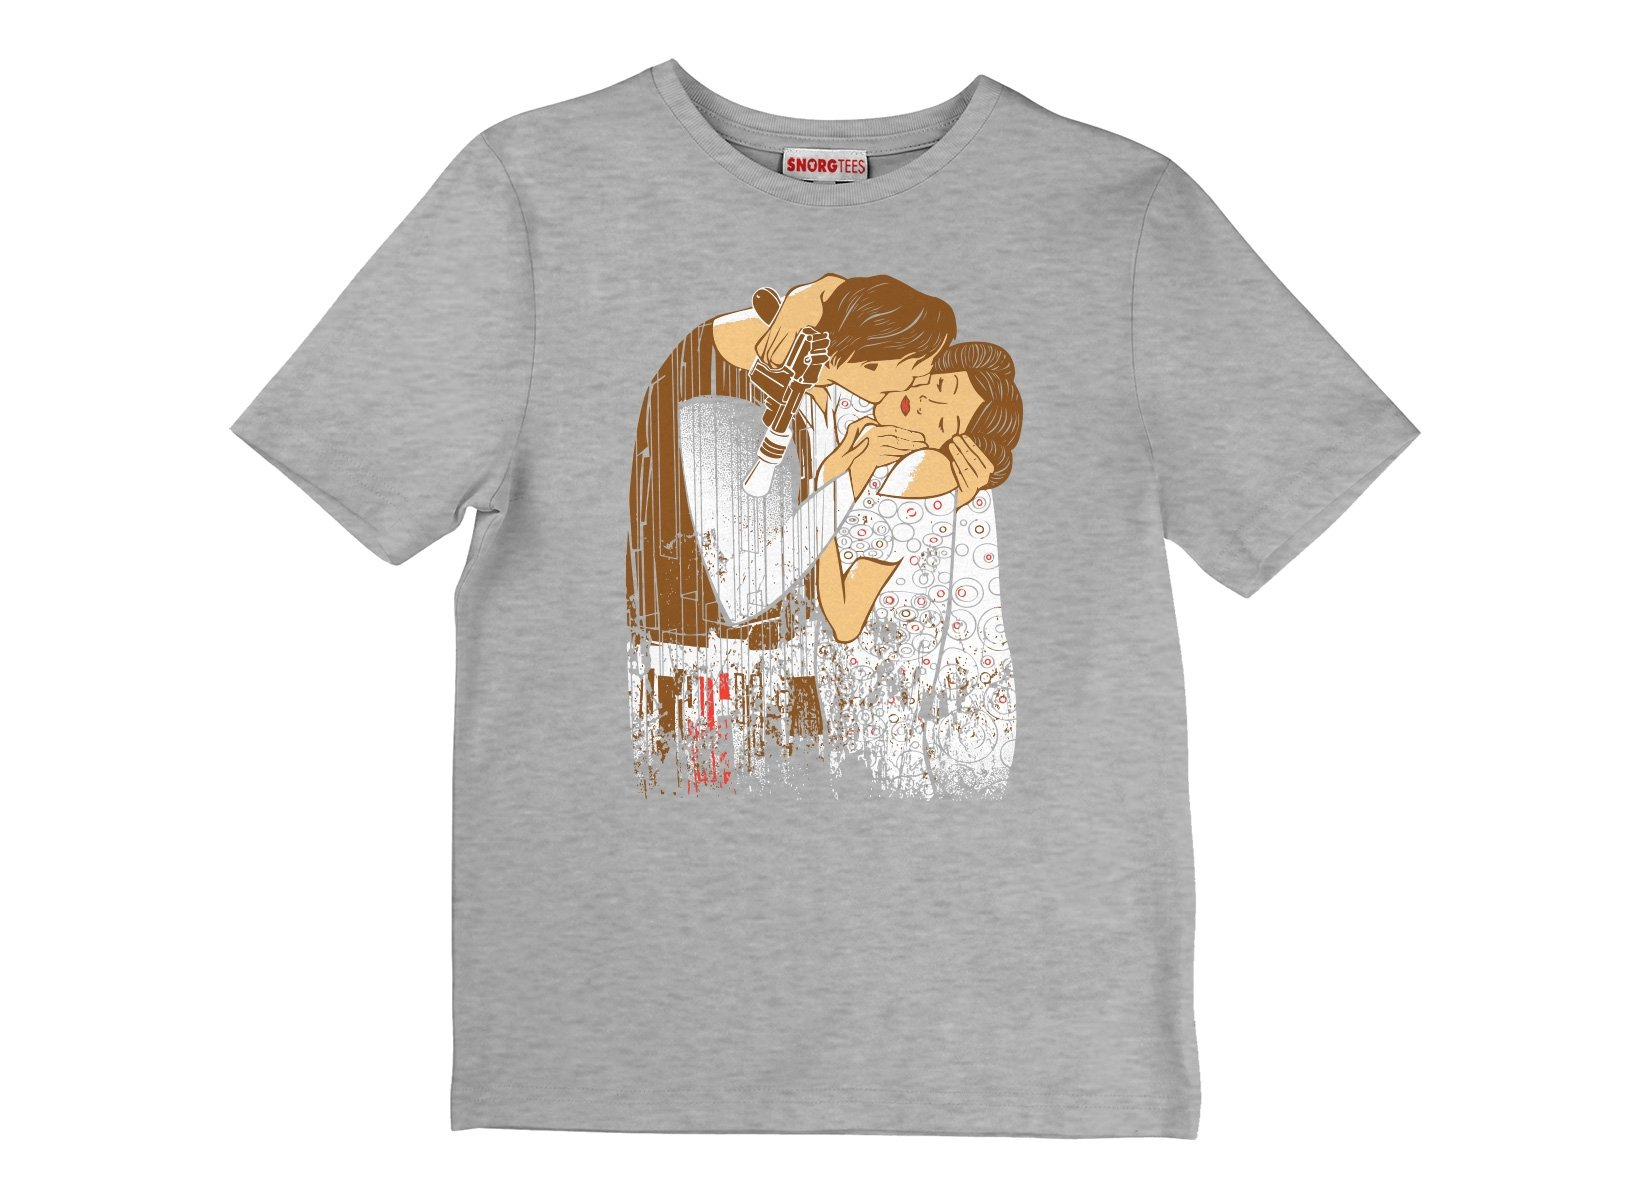 The Kiss on Kids T-Shirt